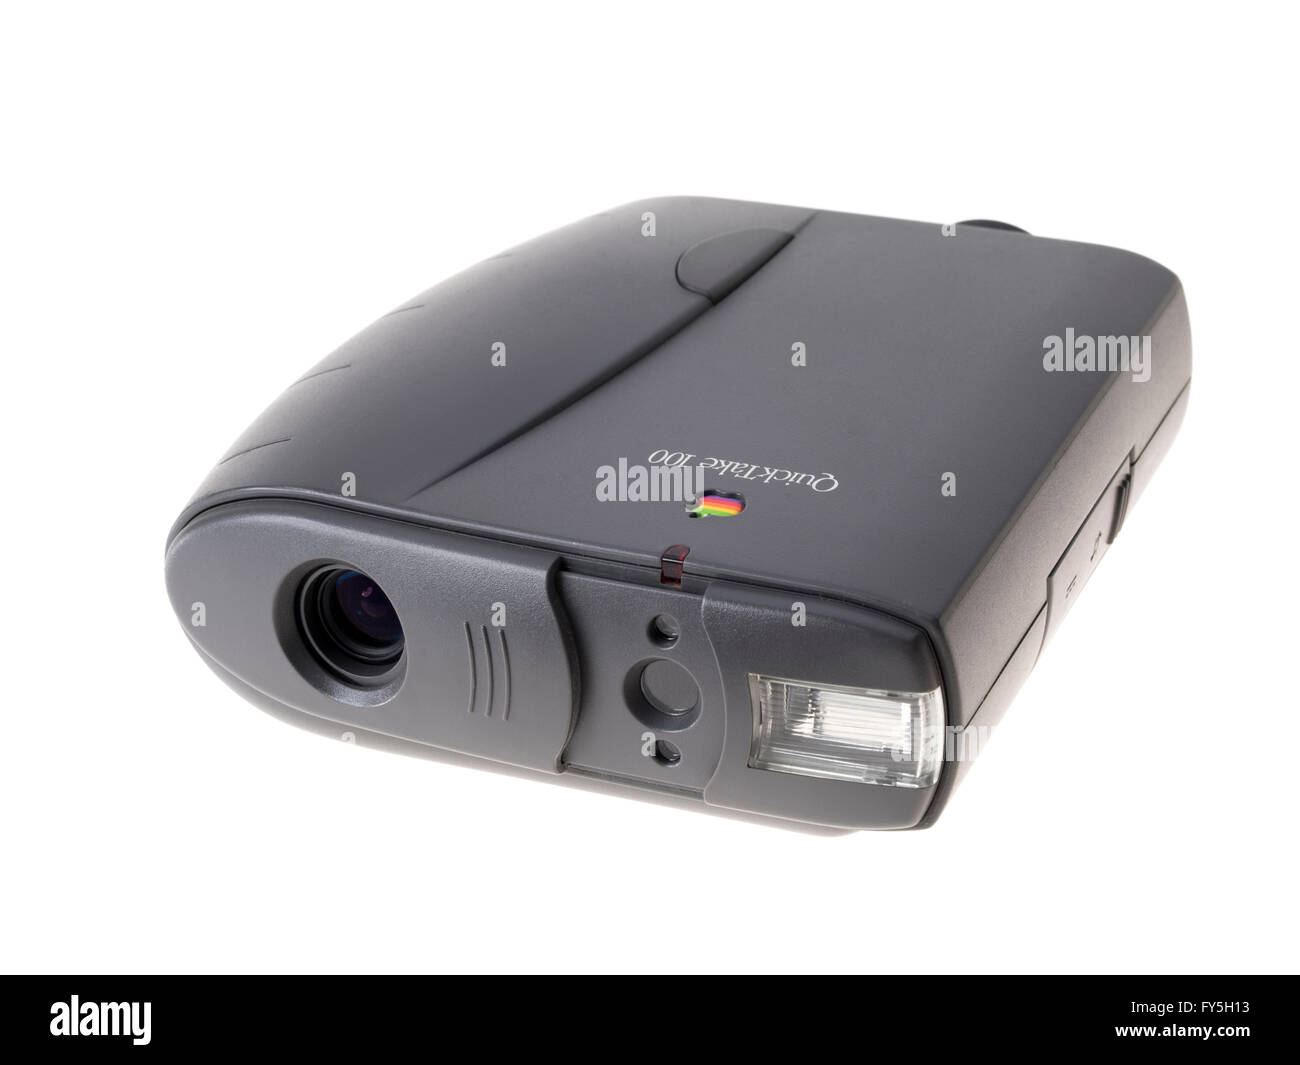 Apple QuickTake 100 consumer digital camera released 1994 by Apple Computer  with images of 640×480 pixels - Stock Image